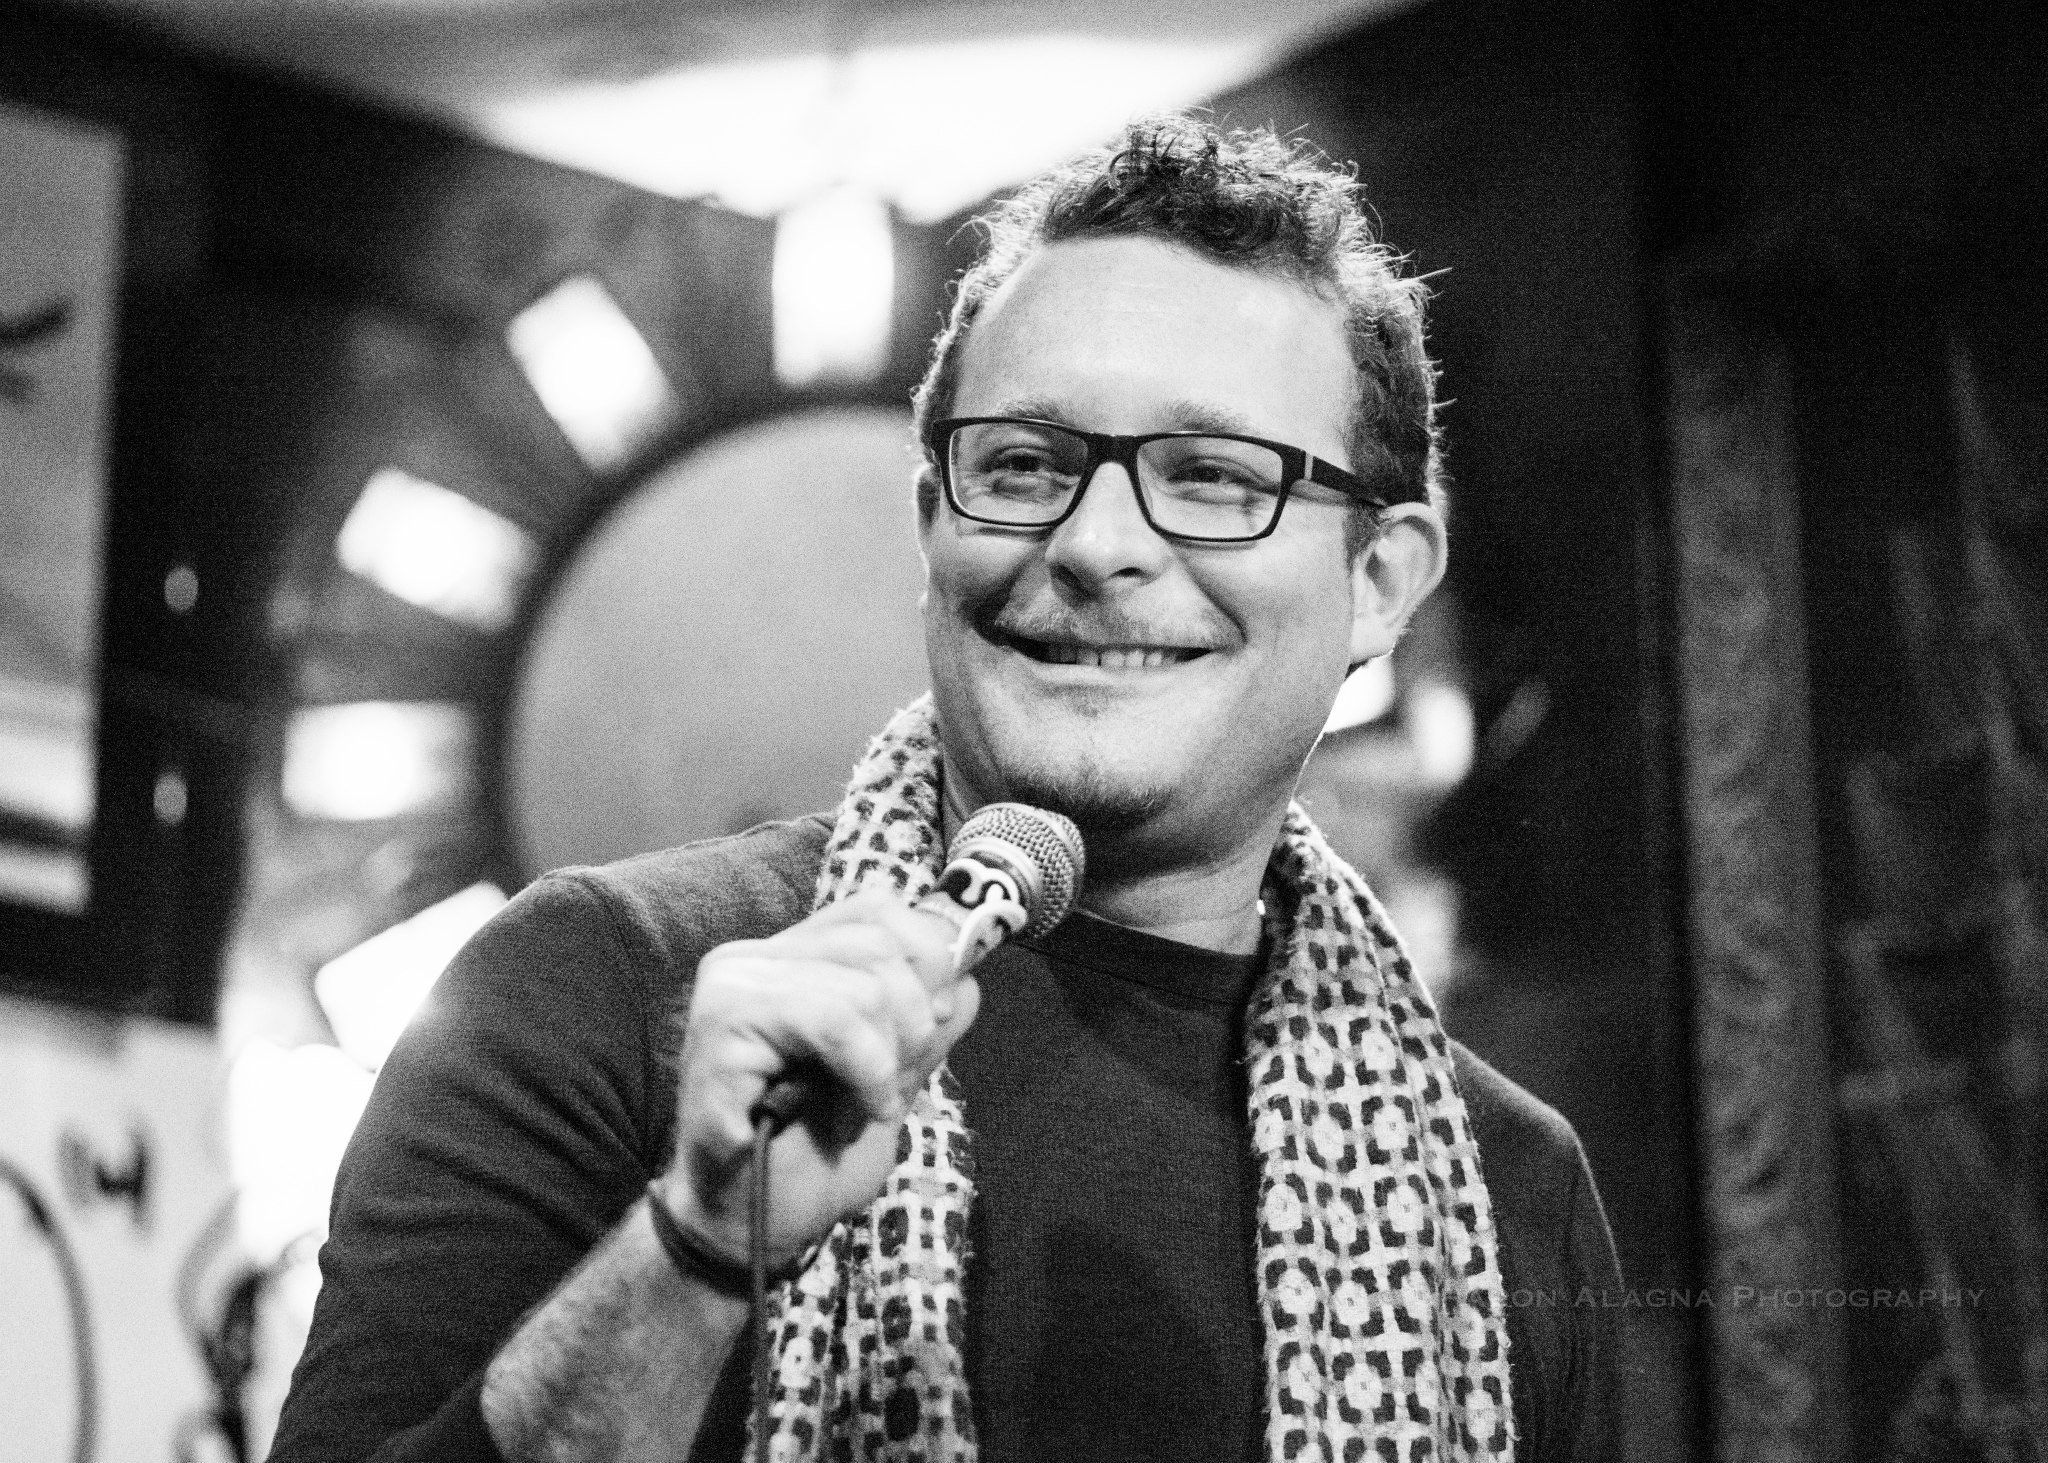 James Adomian photo 2014